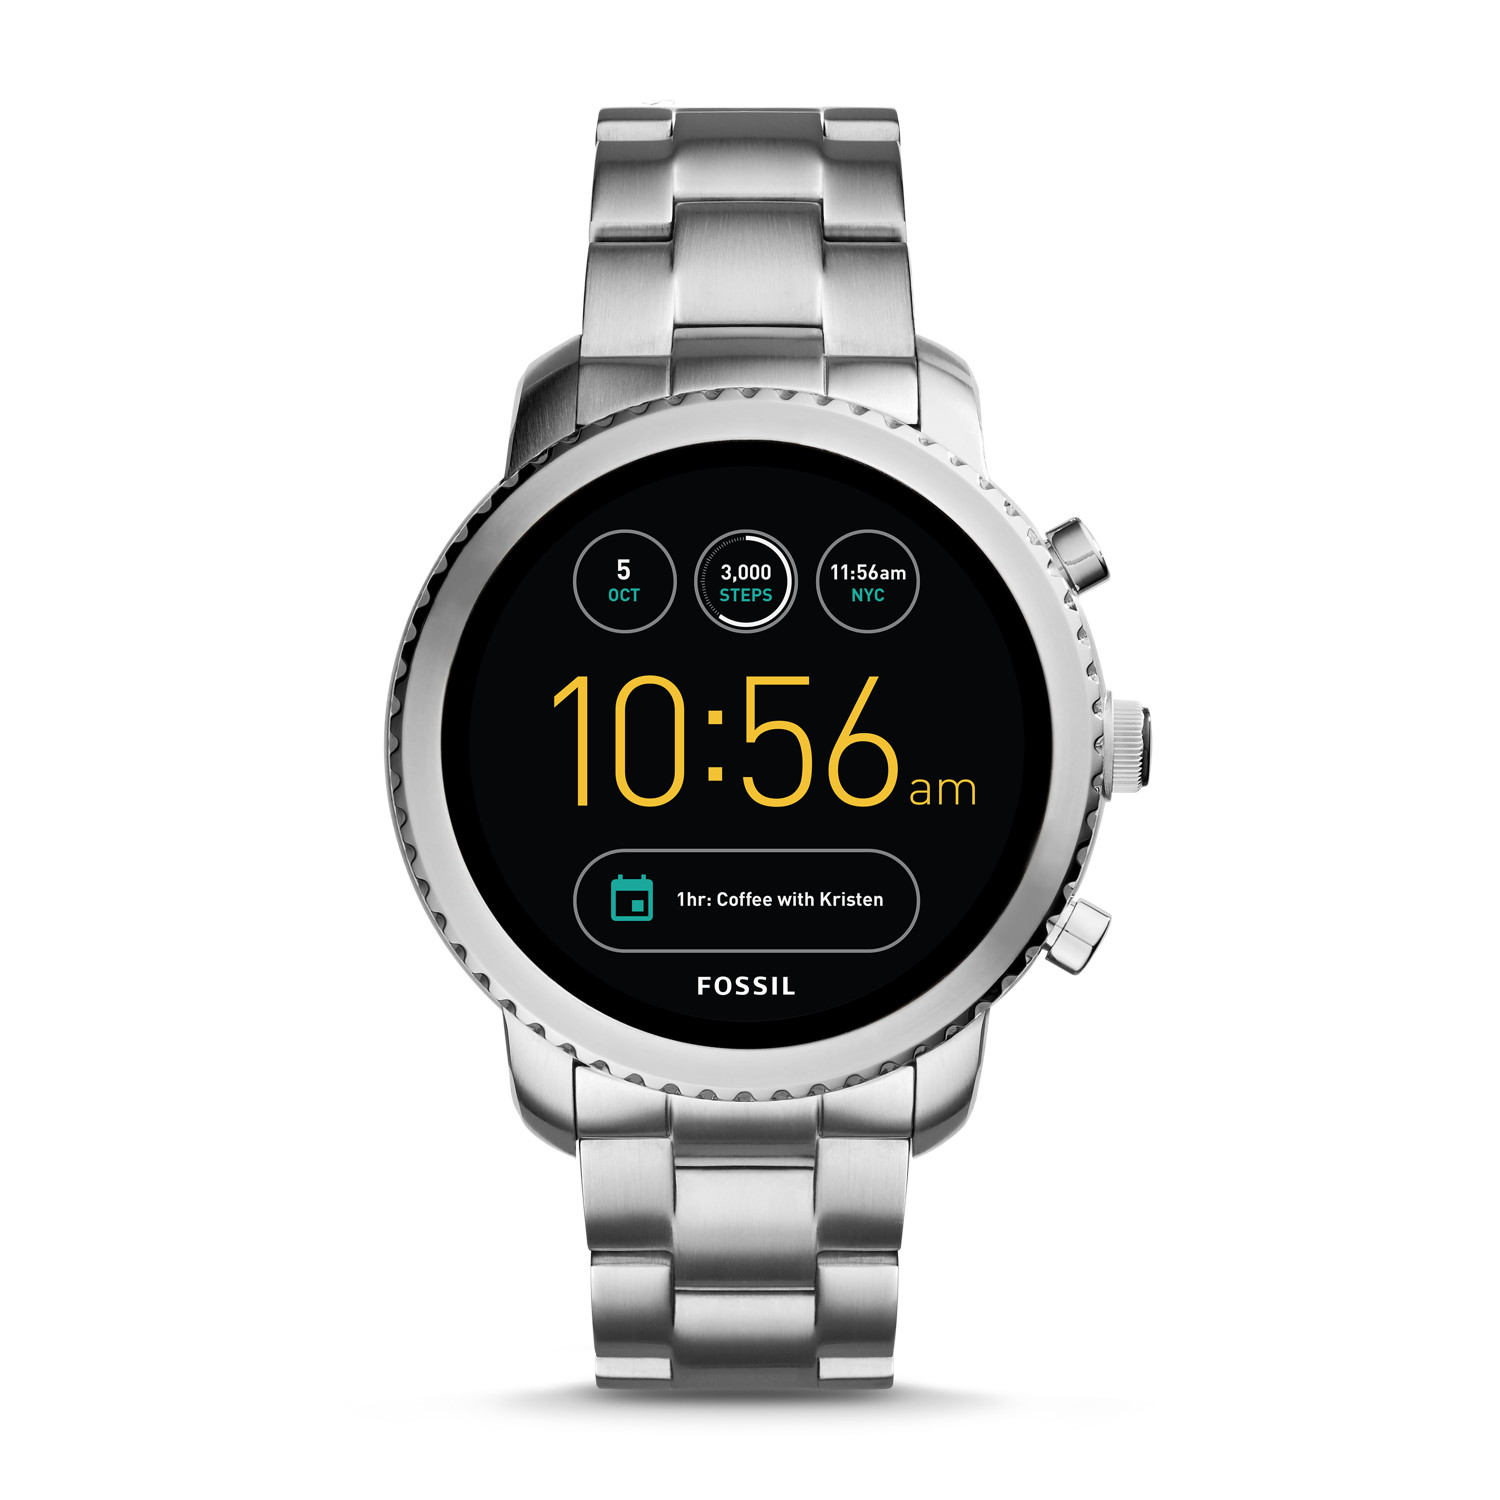 7524bf2f6 Gen 3 Smartwatch - Explorist Stainless Steel - Fossil